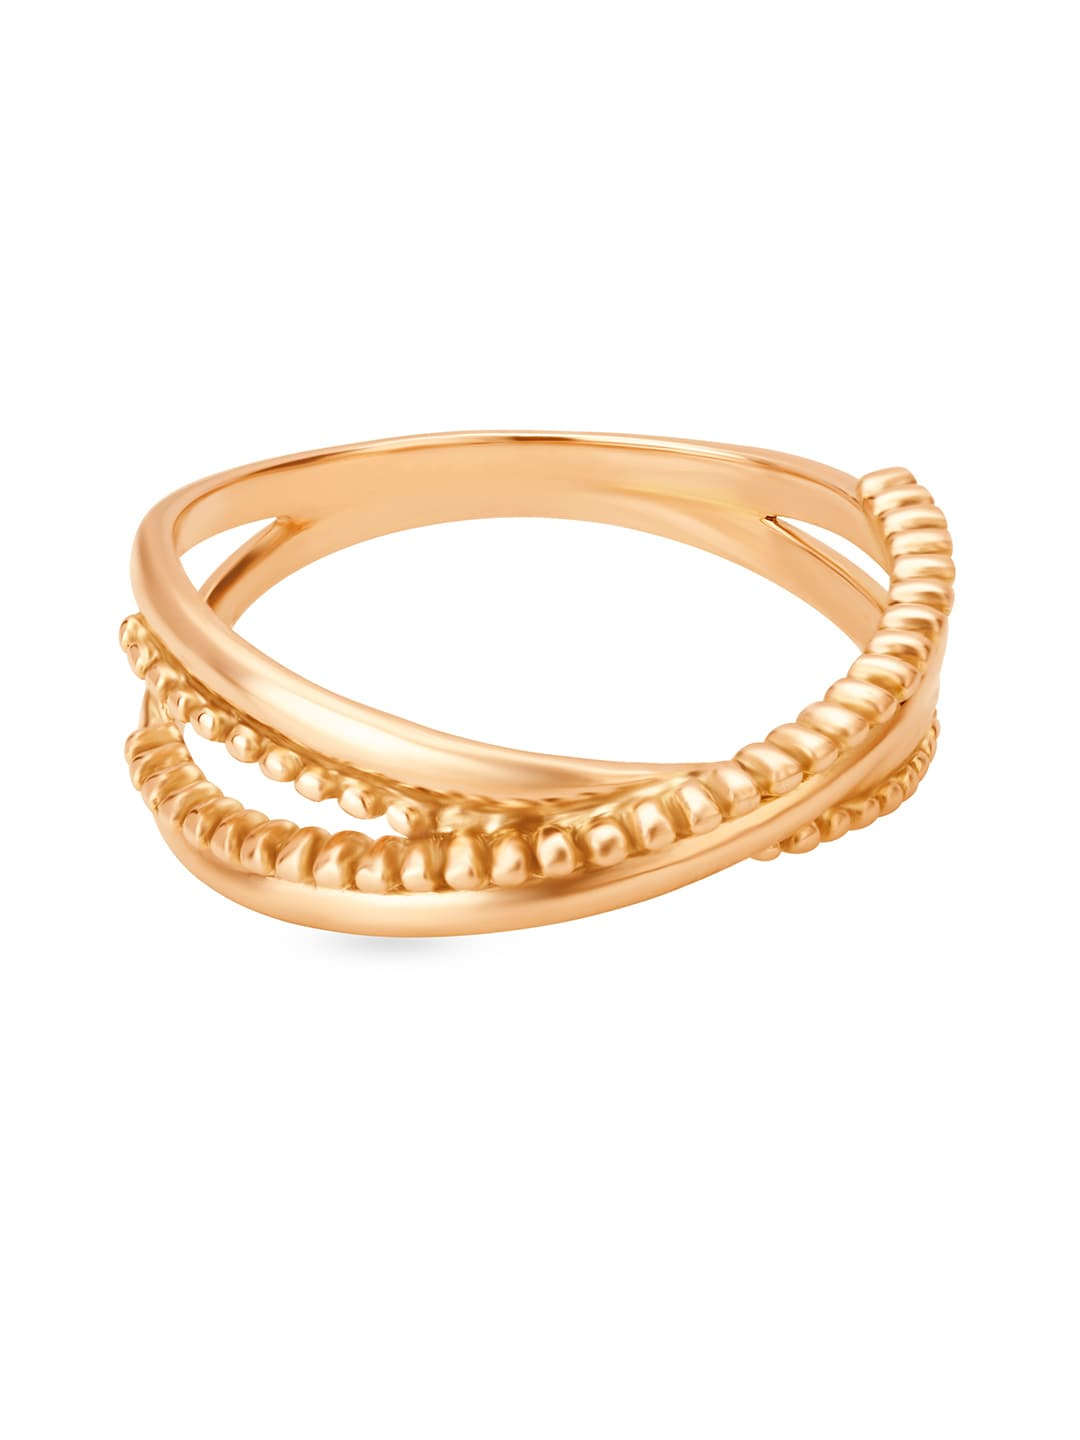 Gold rings for women with price in tanishq